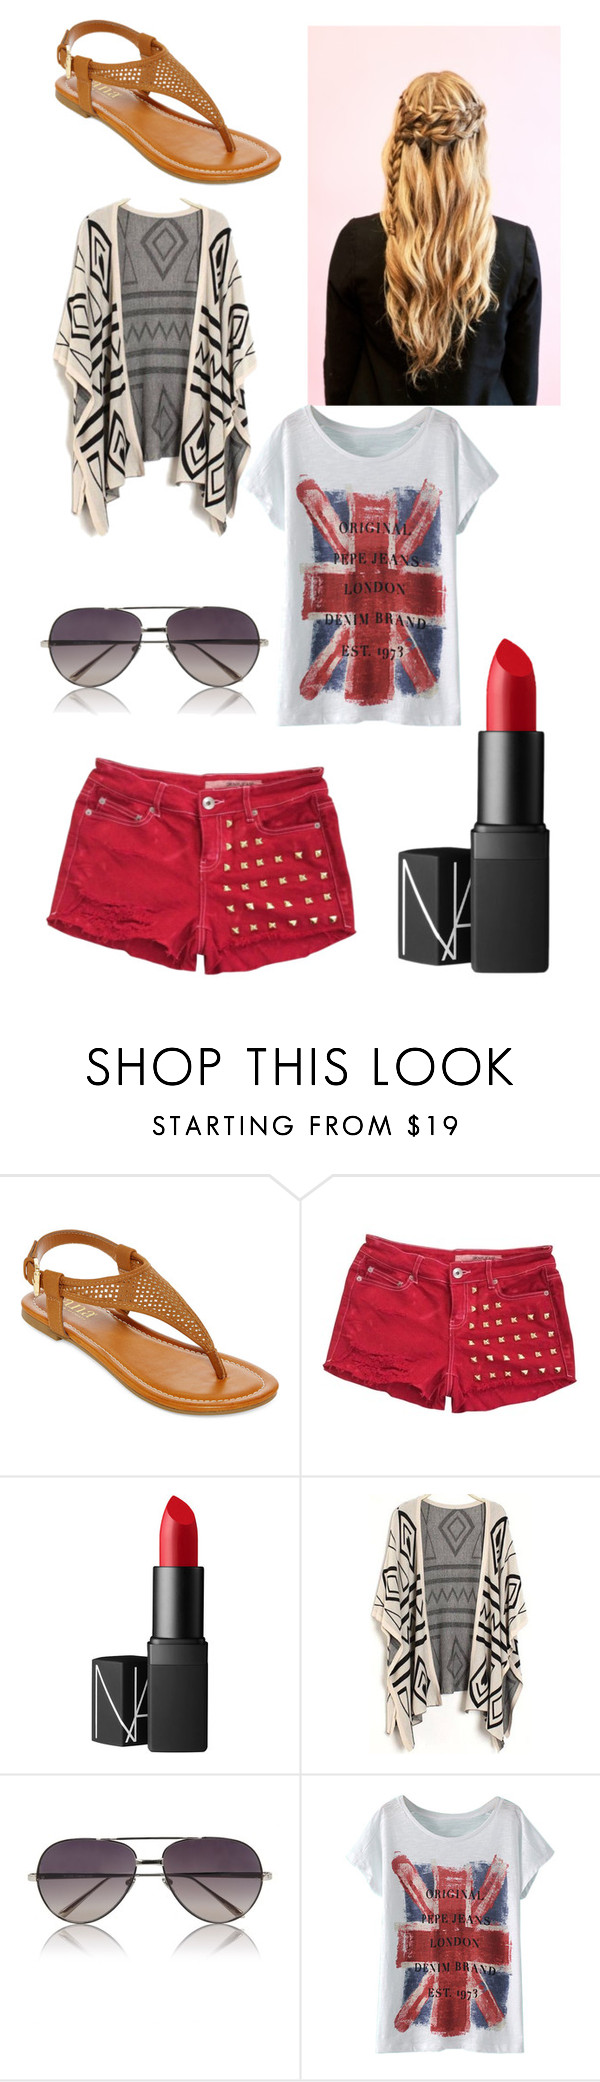 """""""nine"""" by exertive ❤ liked on Polyvore featuring A.N.A, Wrangler, NARS Cosmetics and Linda Farrow"""